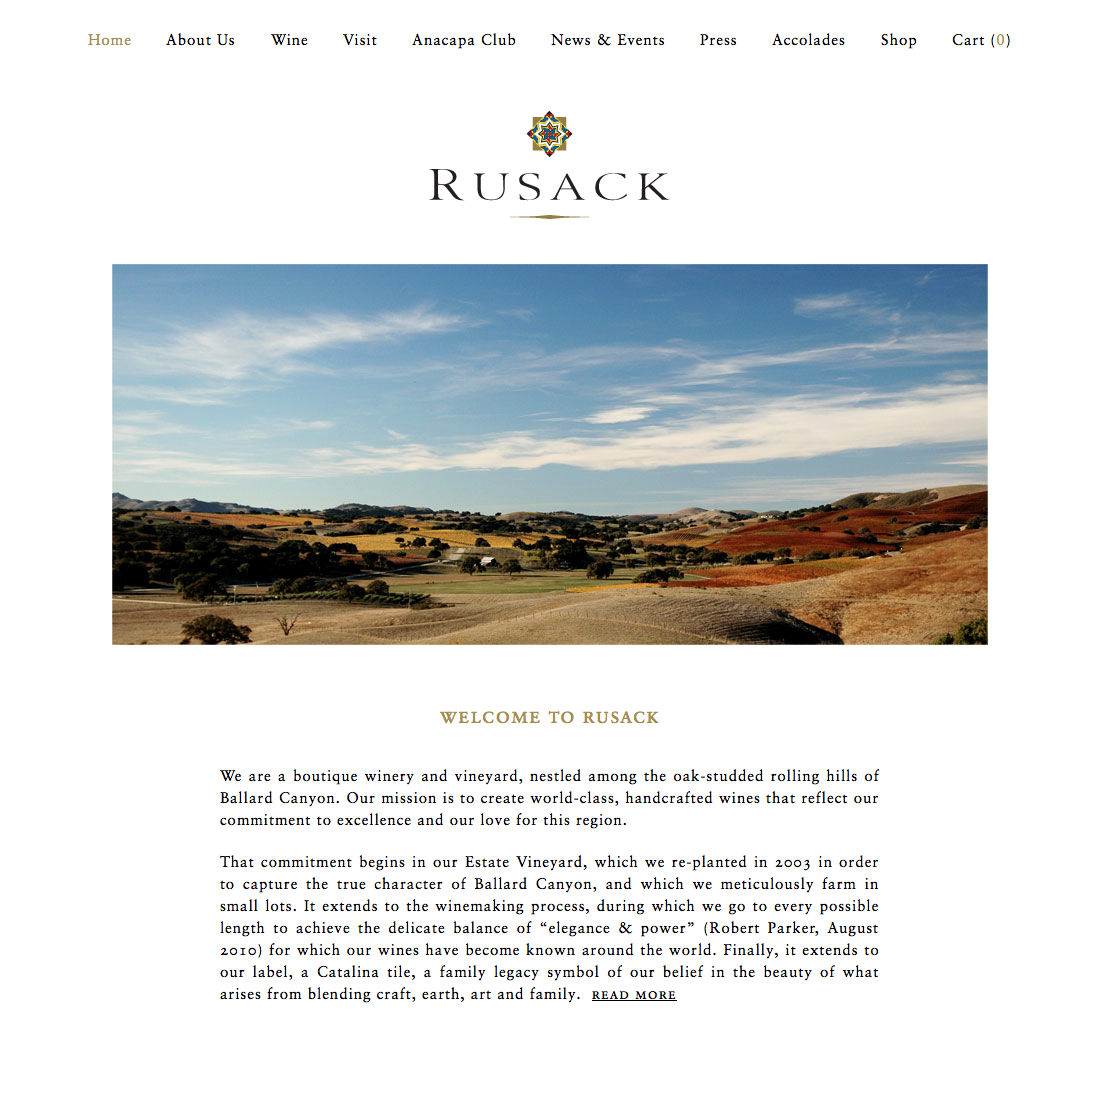 Rusack, A boutique winery and vineyard, nestled among the oak-studded rolling hills of Ballard Canyon